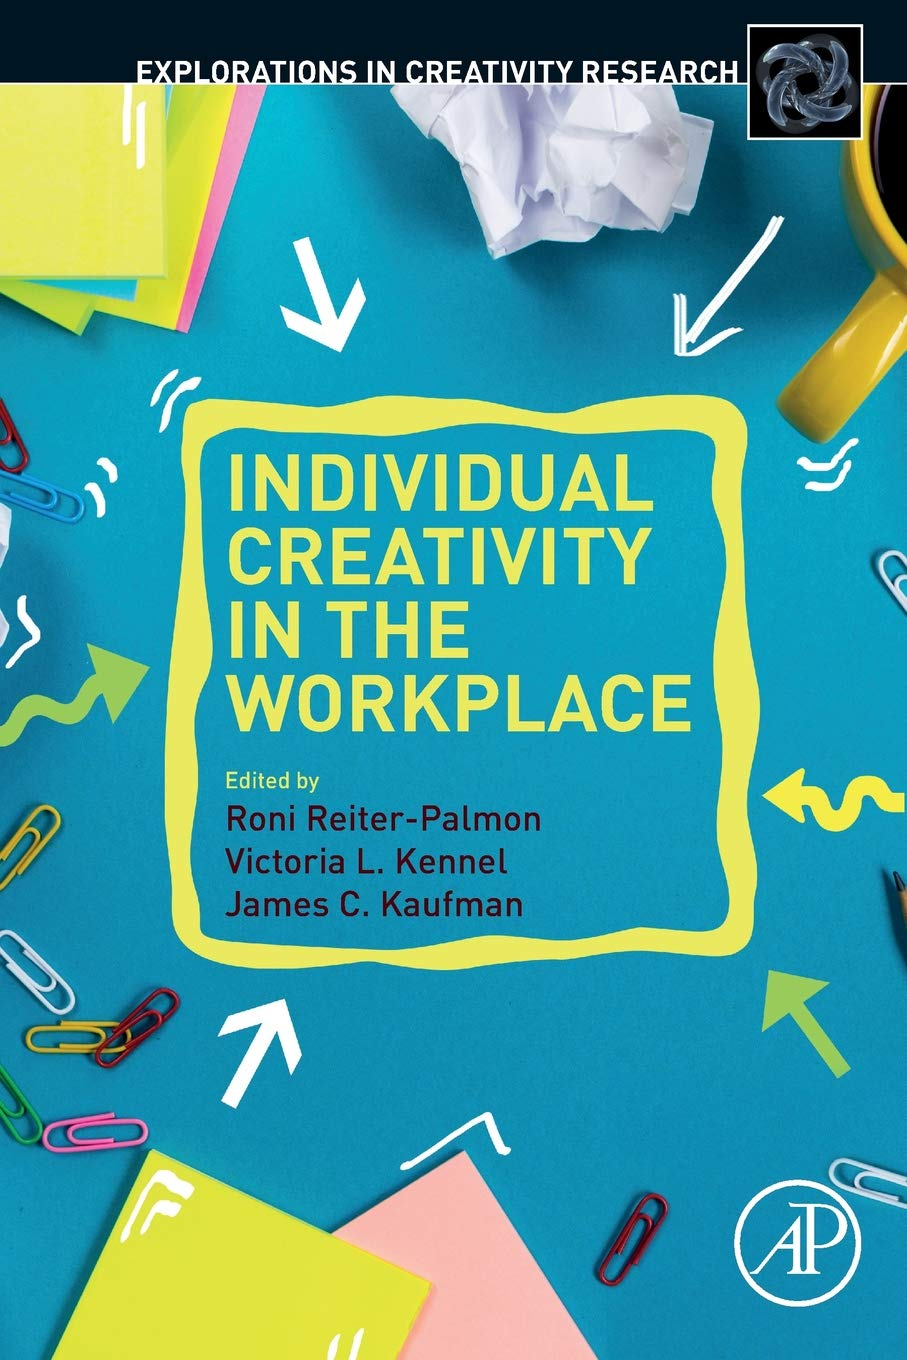 Individual Creativity in the Workplace (Explorations in Creativity Research)